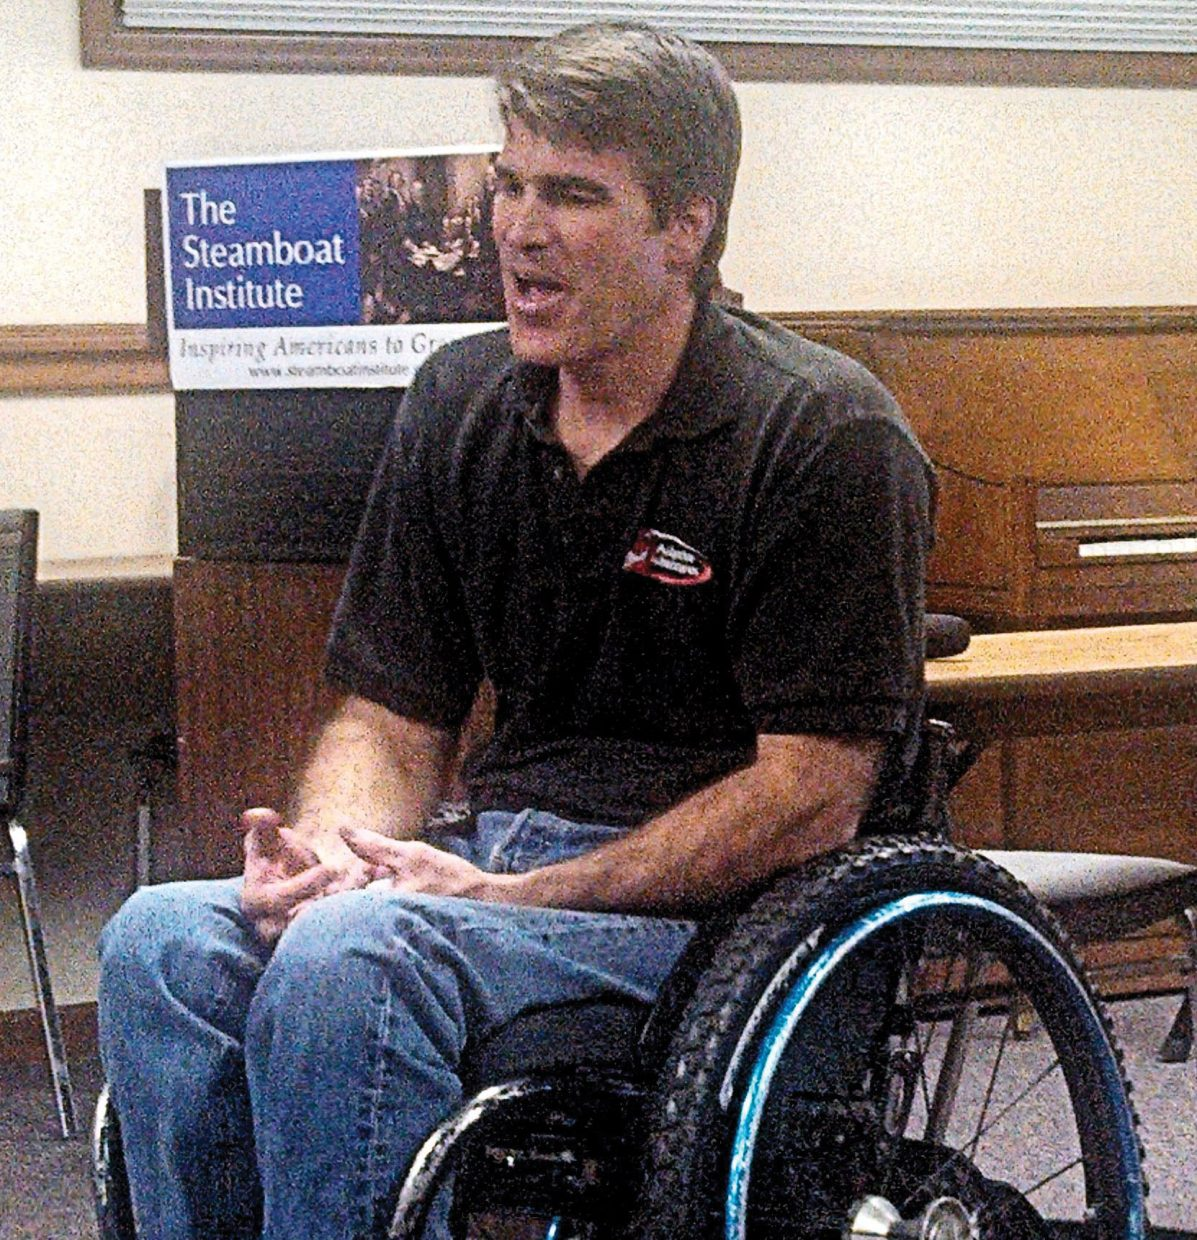 Matt Feeney, co-founder of Adaptive Adventures, talks to The Steamboat Institute's 1773 Club on Tuesday about Adaptive Adventures programs that allow participation in snow and water skiing, bicycling and other outdoor sports by wounded veterans and other people with disabilities.